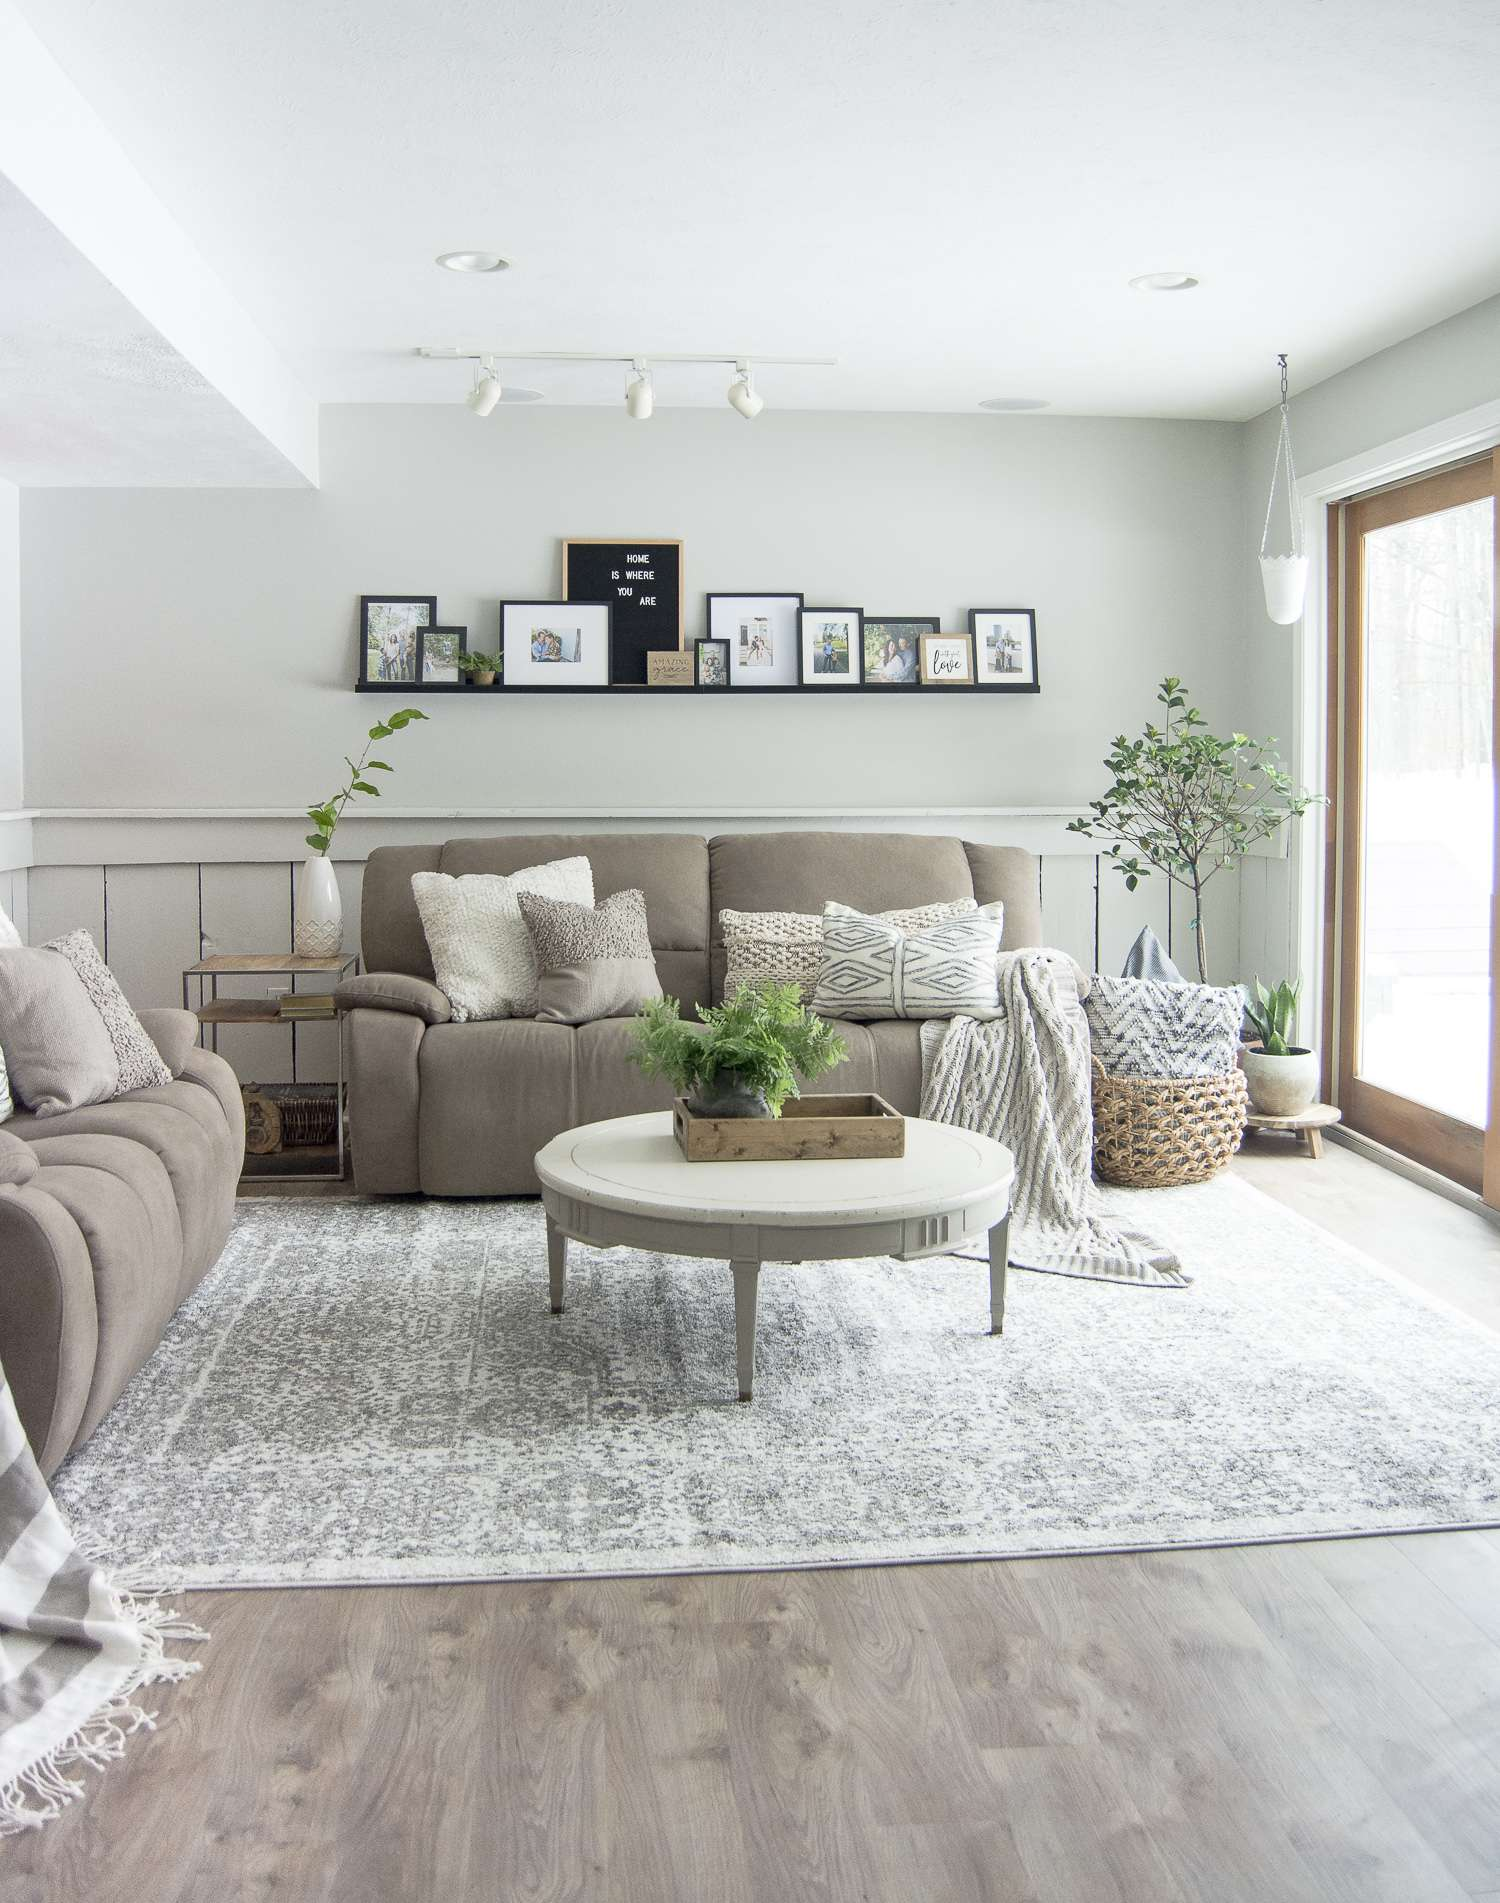 Do you struggle to keep your family room pretty and practical? Today I'm sharing my family room design and how I make it work for an active family of four. #fromhousetohaven #familyroomdesign #livingroom #homedecor